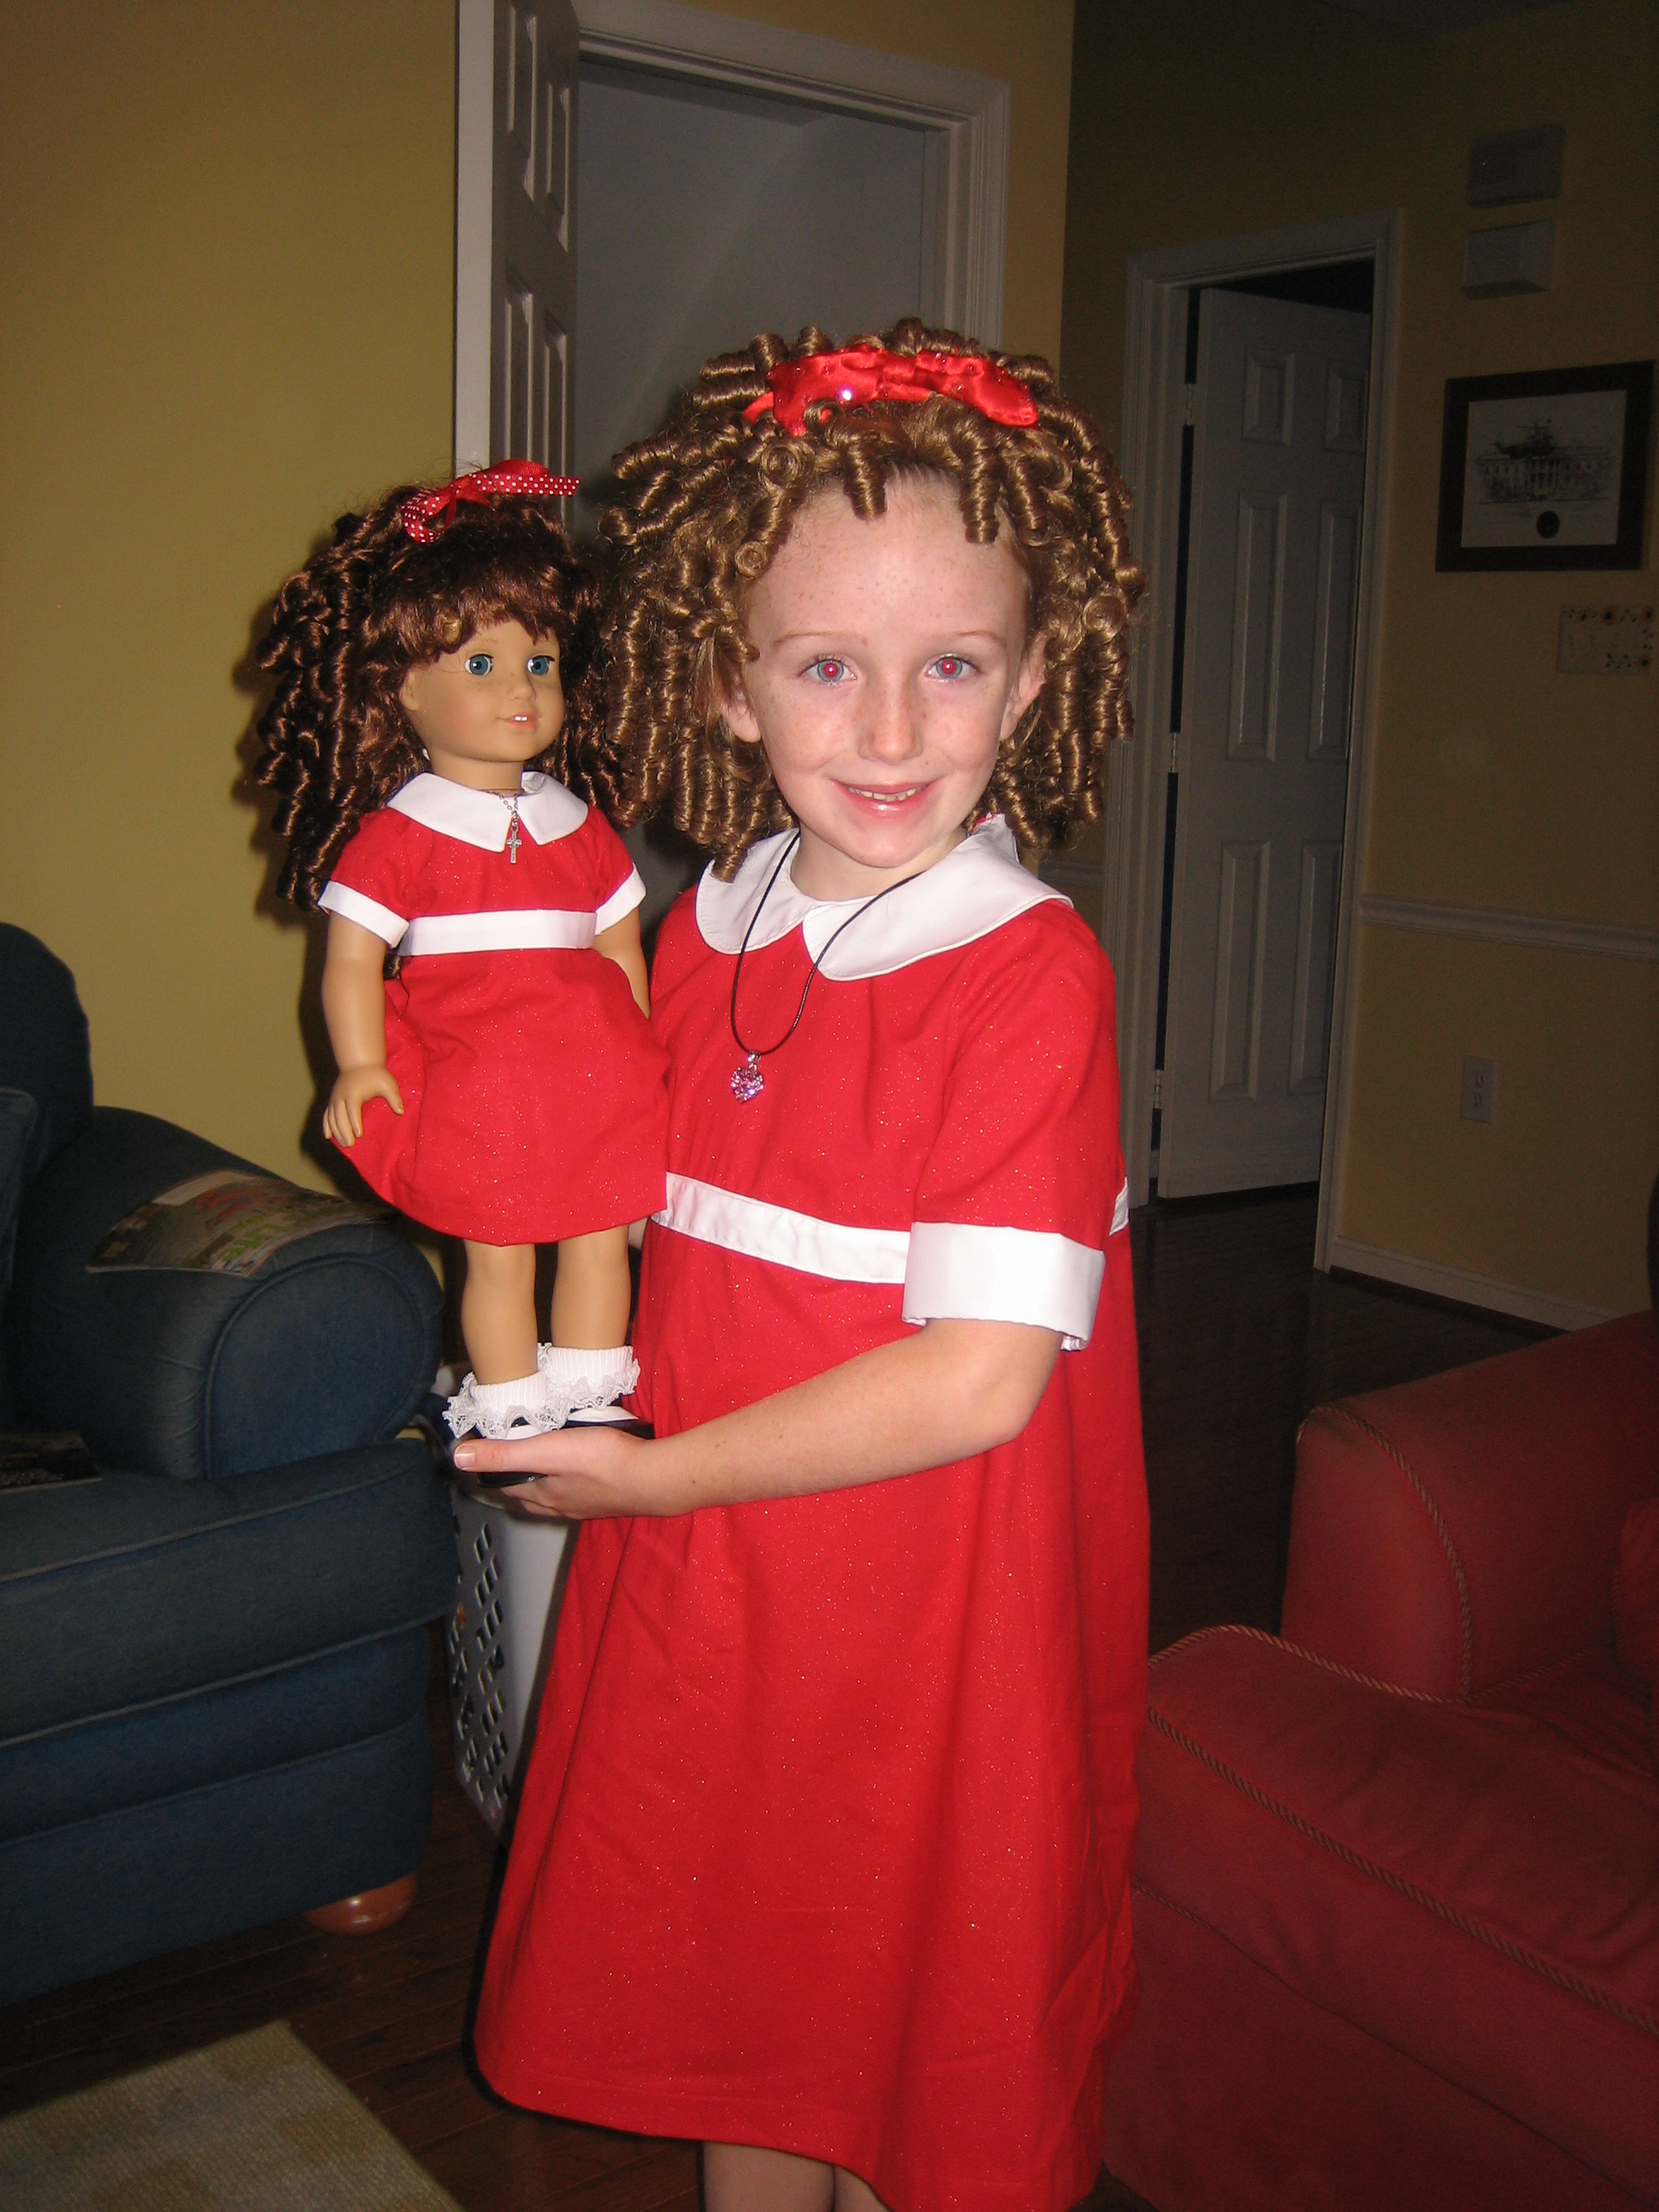 Use Oh Sew Kat! sewing patterns to make a matching Halloween costume for an 18 inch American Girl doll. Easy to sew, quick photo tutorials available on Etsy. #halloweencostume #dollclothes #18inch